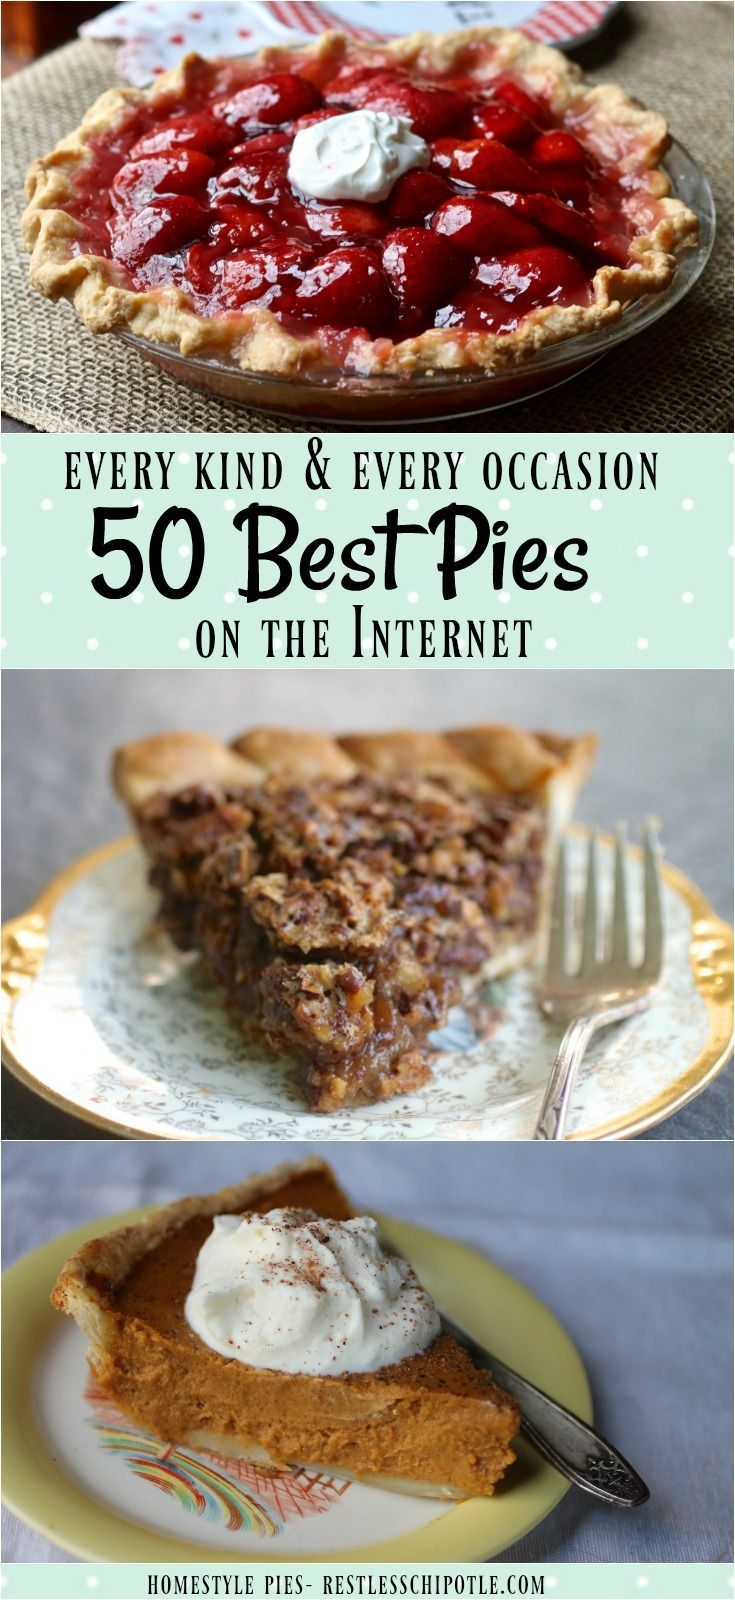 50 Best Pie Recipes On The Internet